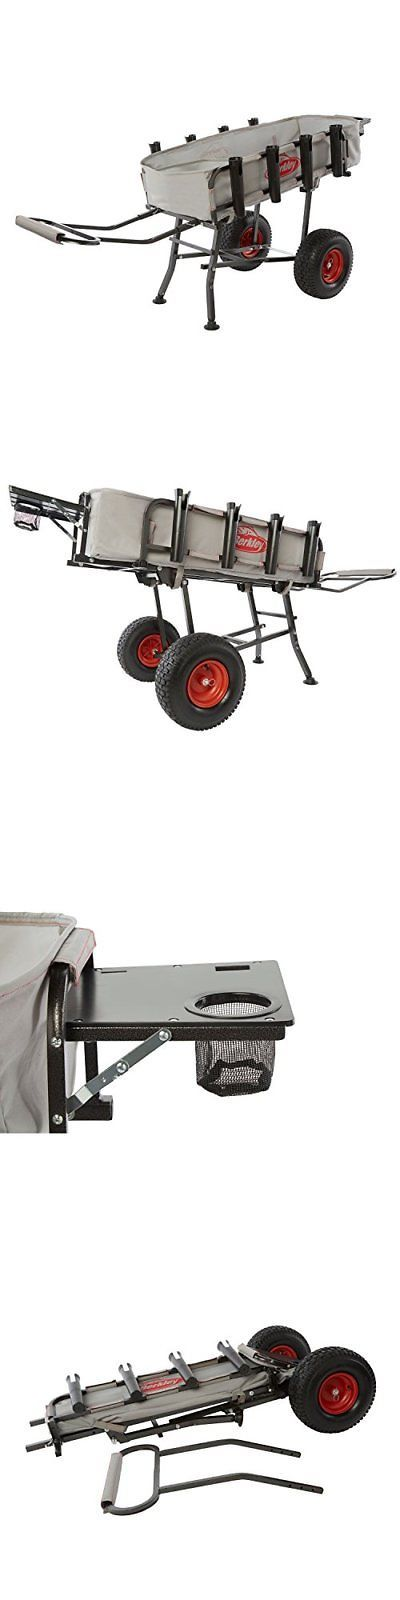 Fishing Carts and Wagons 179993: Berkley Fishing Cart 028632640913 -> BUY IT NOW ONLY: $249.68 on eBay!